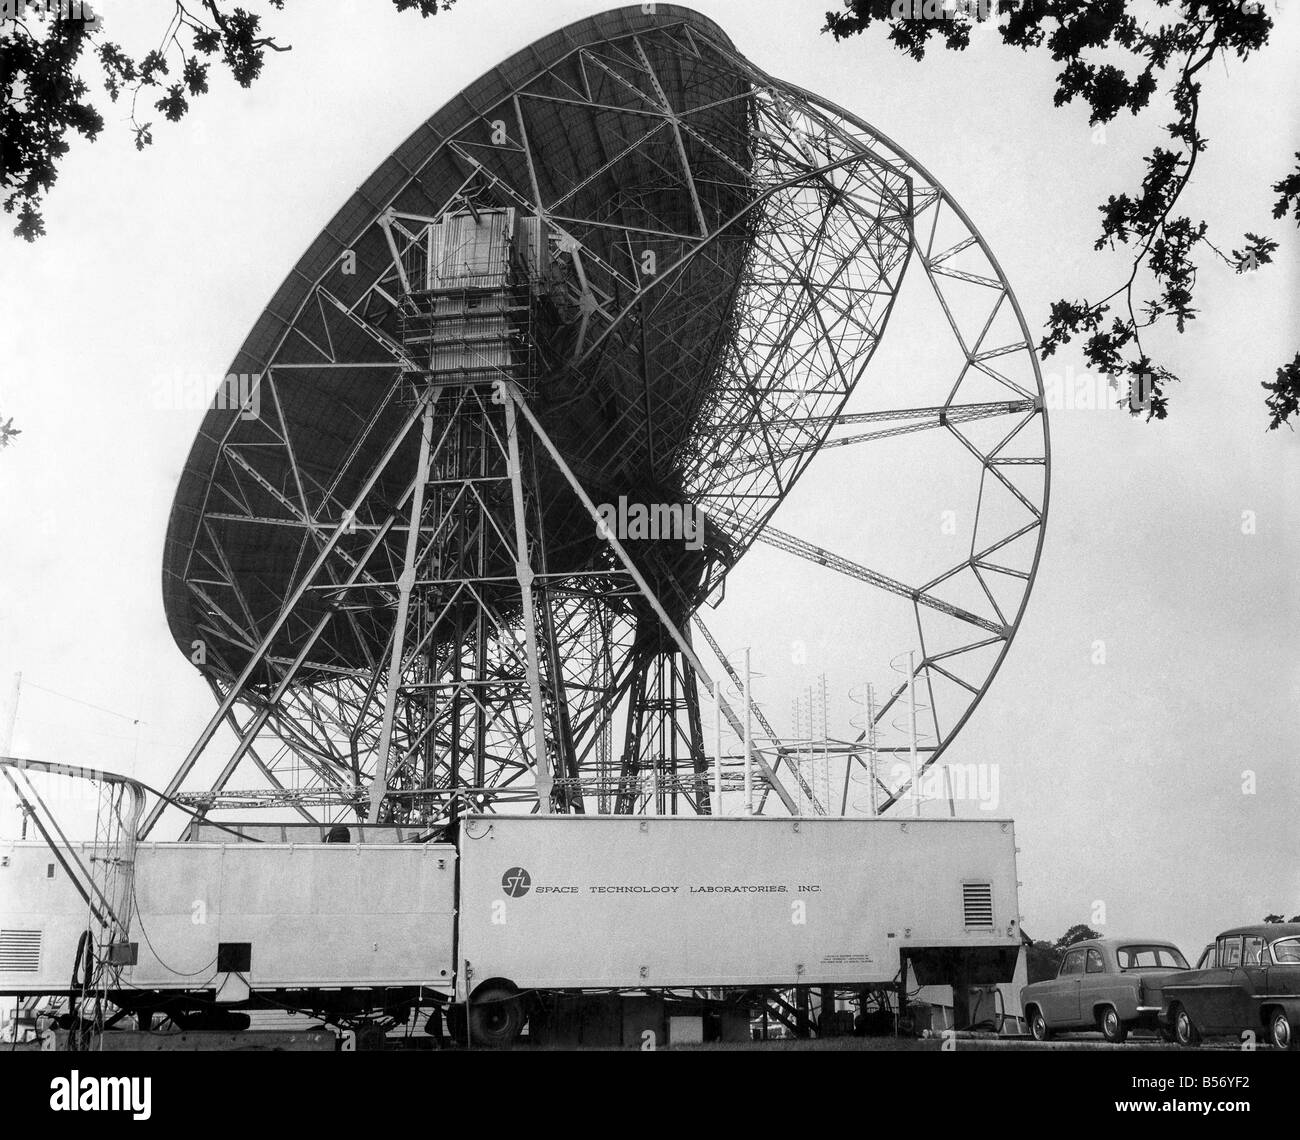 The Radio telescope at Jodrell Bank. December 1958 P009706 - Stock Image